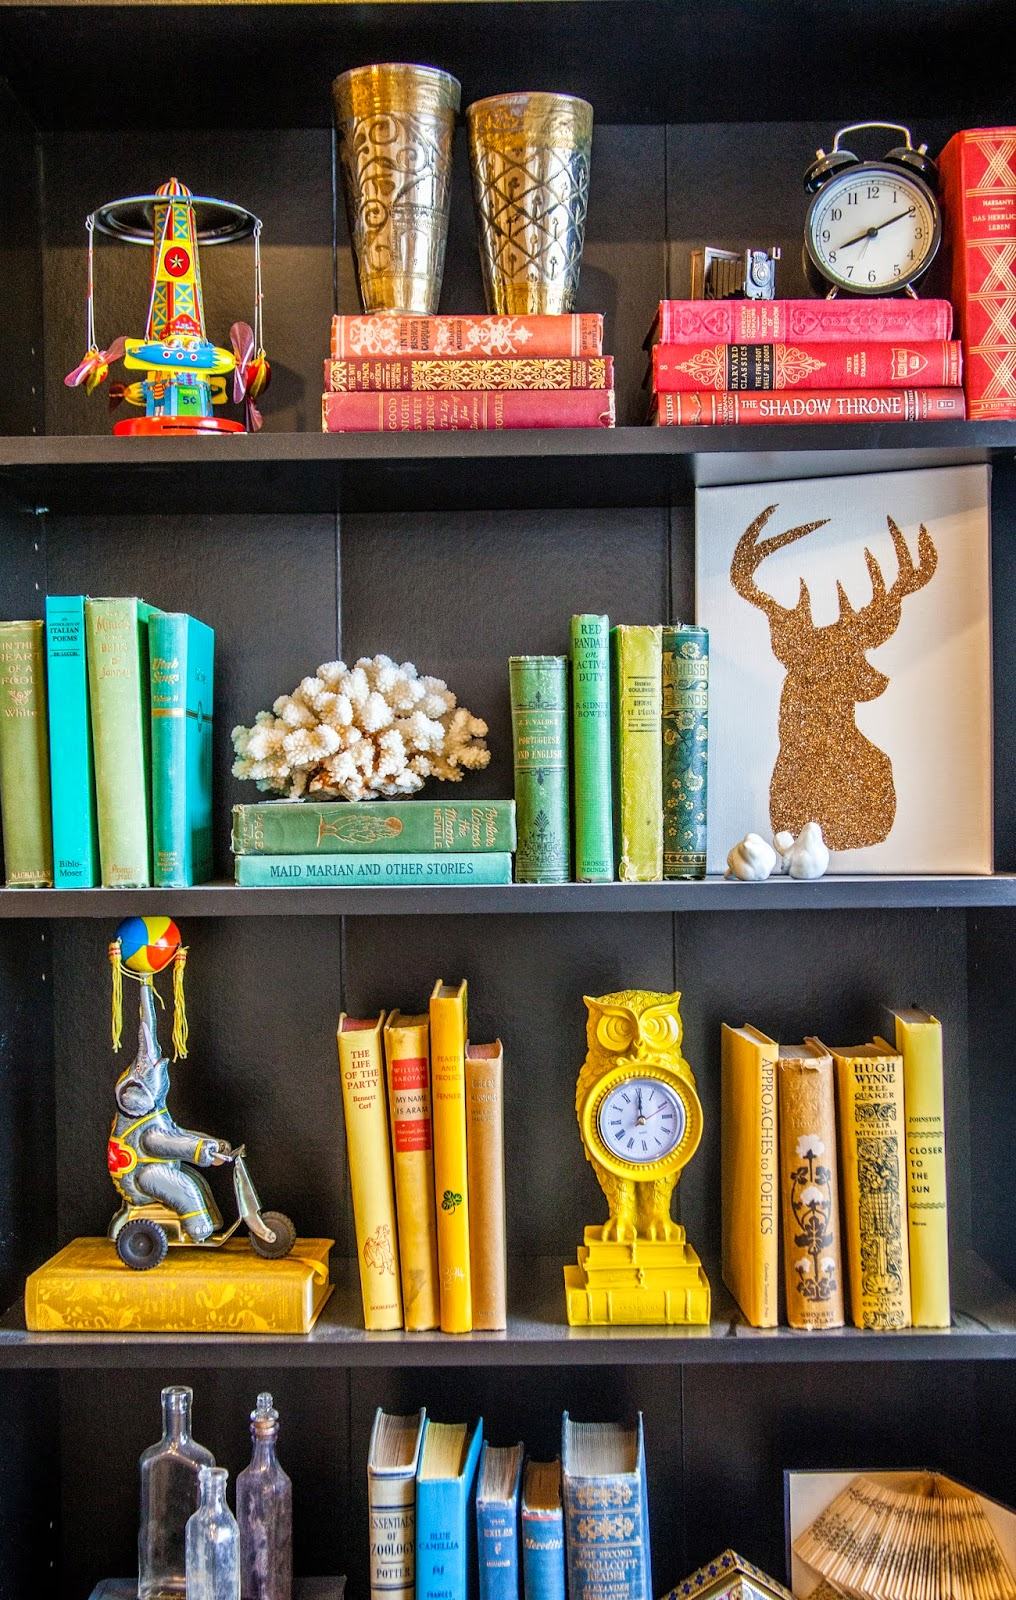 Adding color to your book shelves